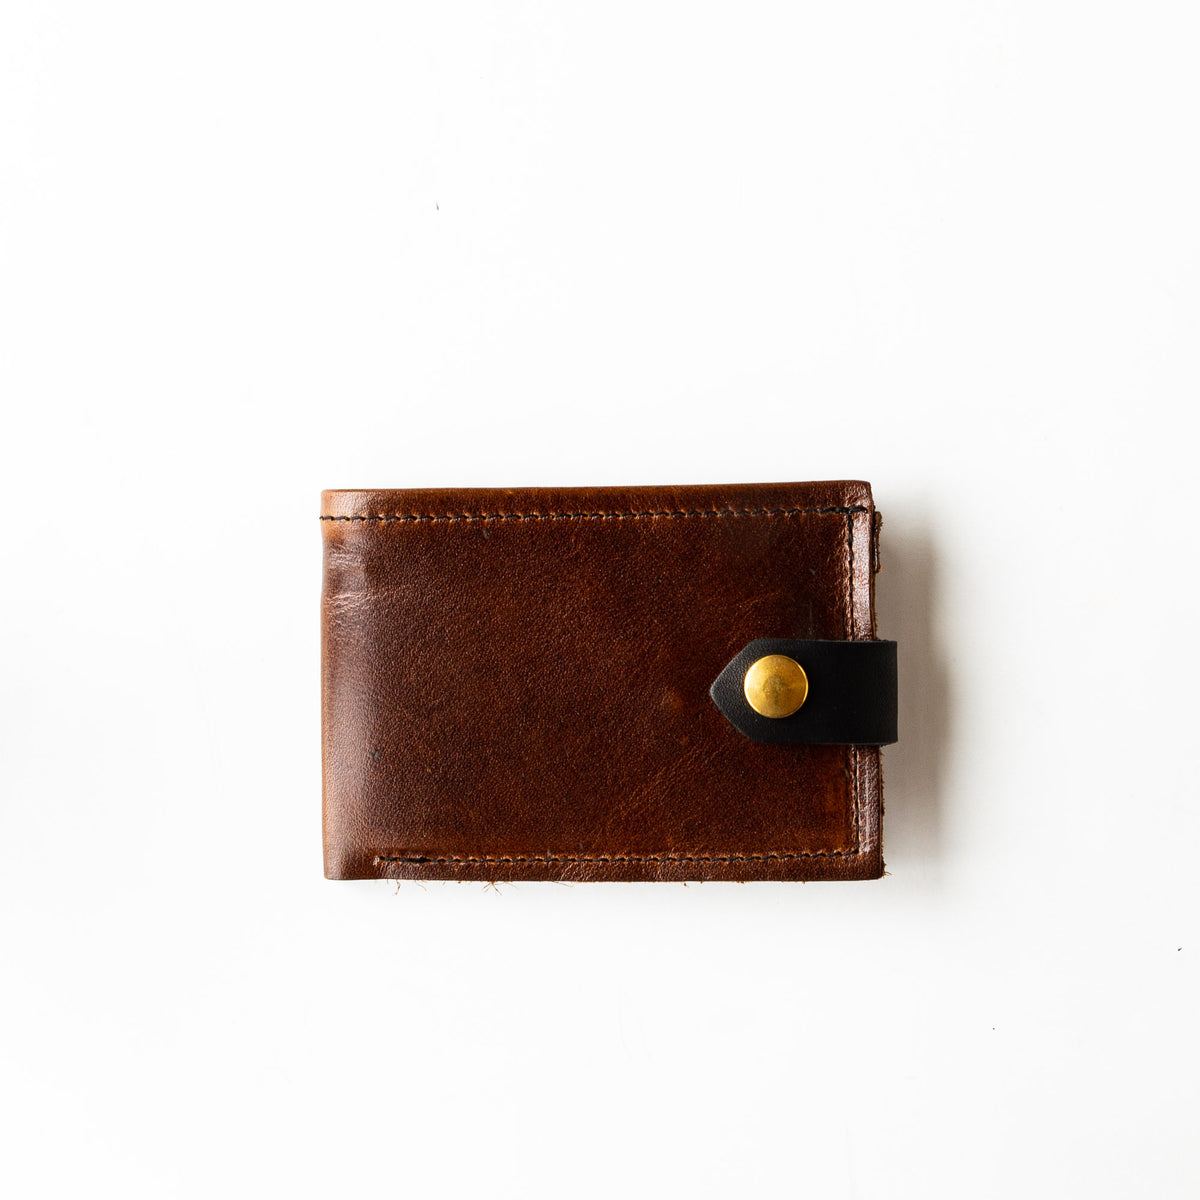 Cognac Brown - Oiled Black - St-Joseph - Classic Unisex Wallet / Card Holder - Sold by Chic & Basta